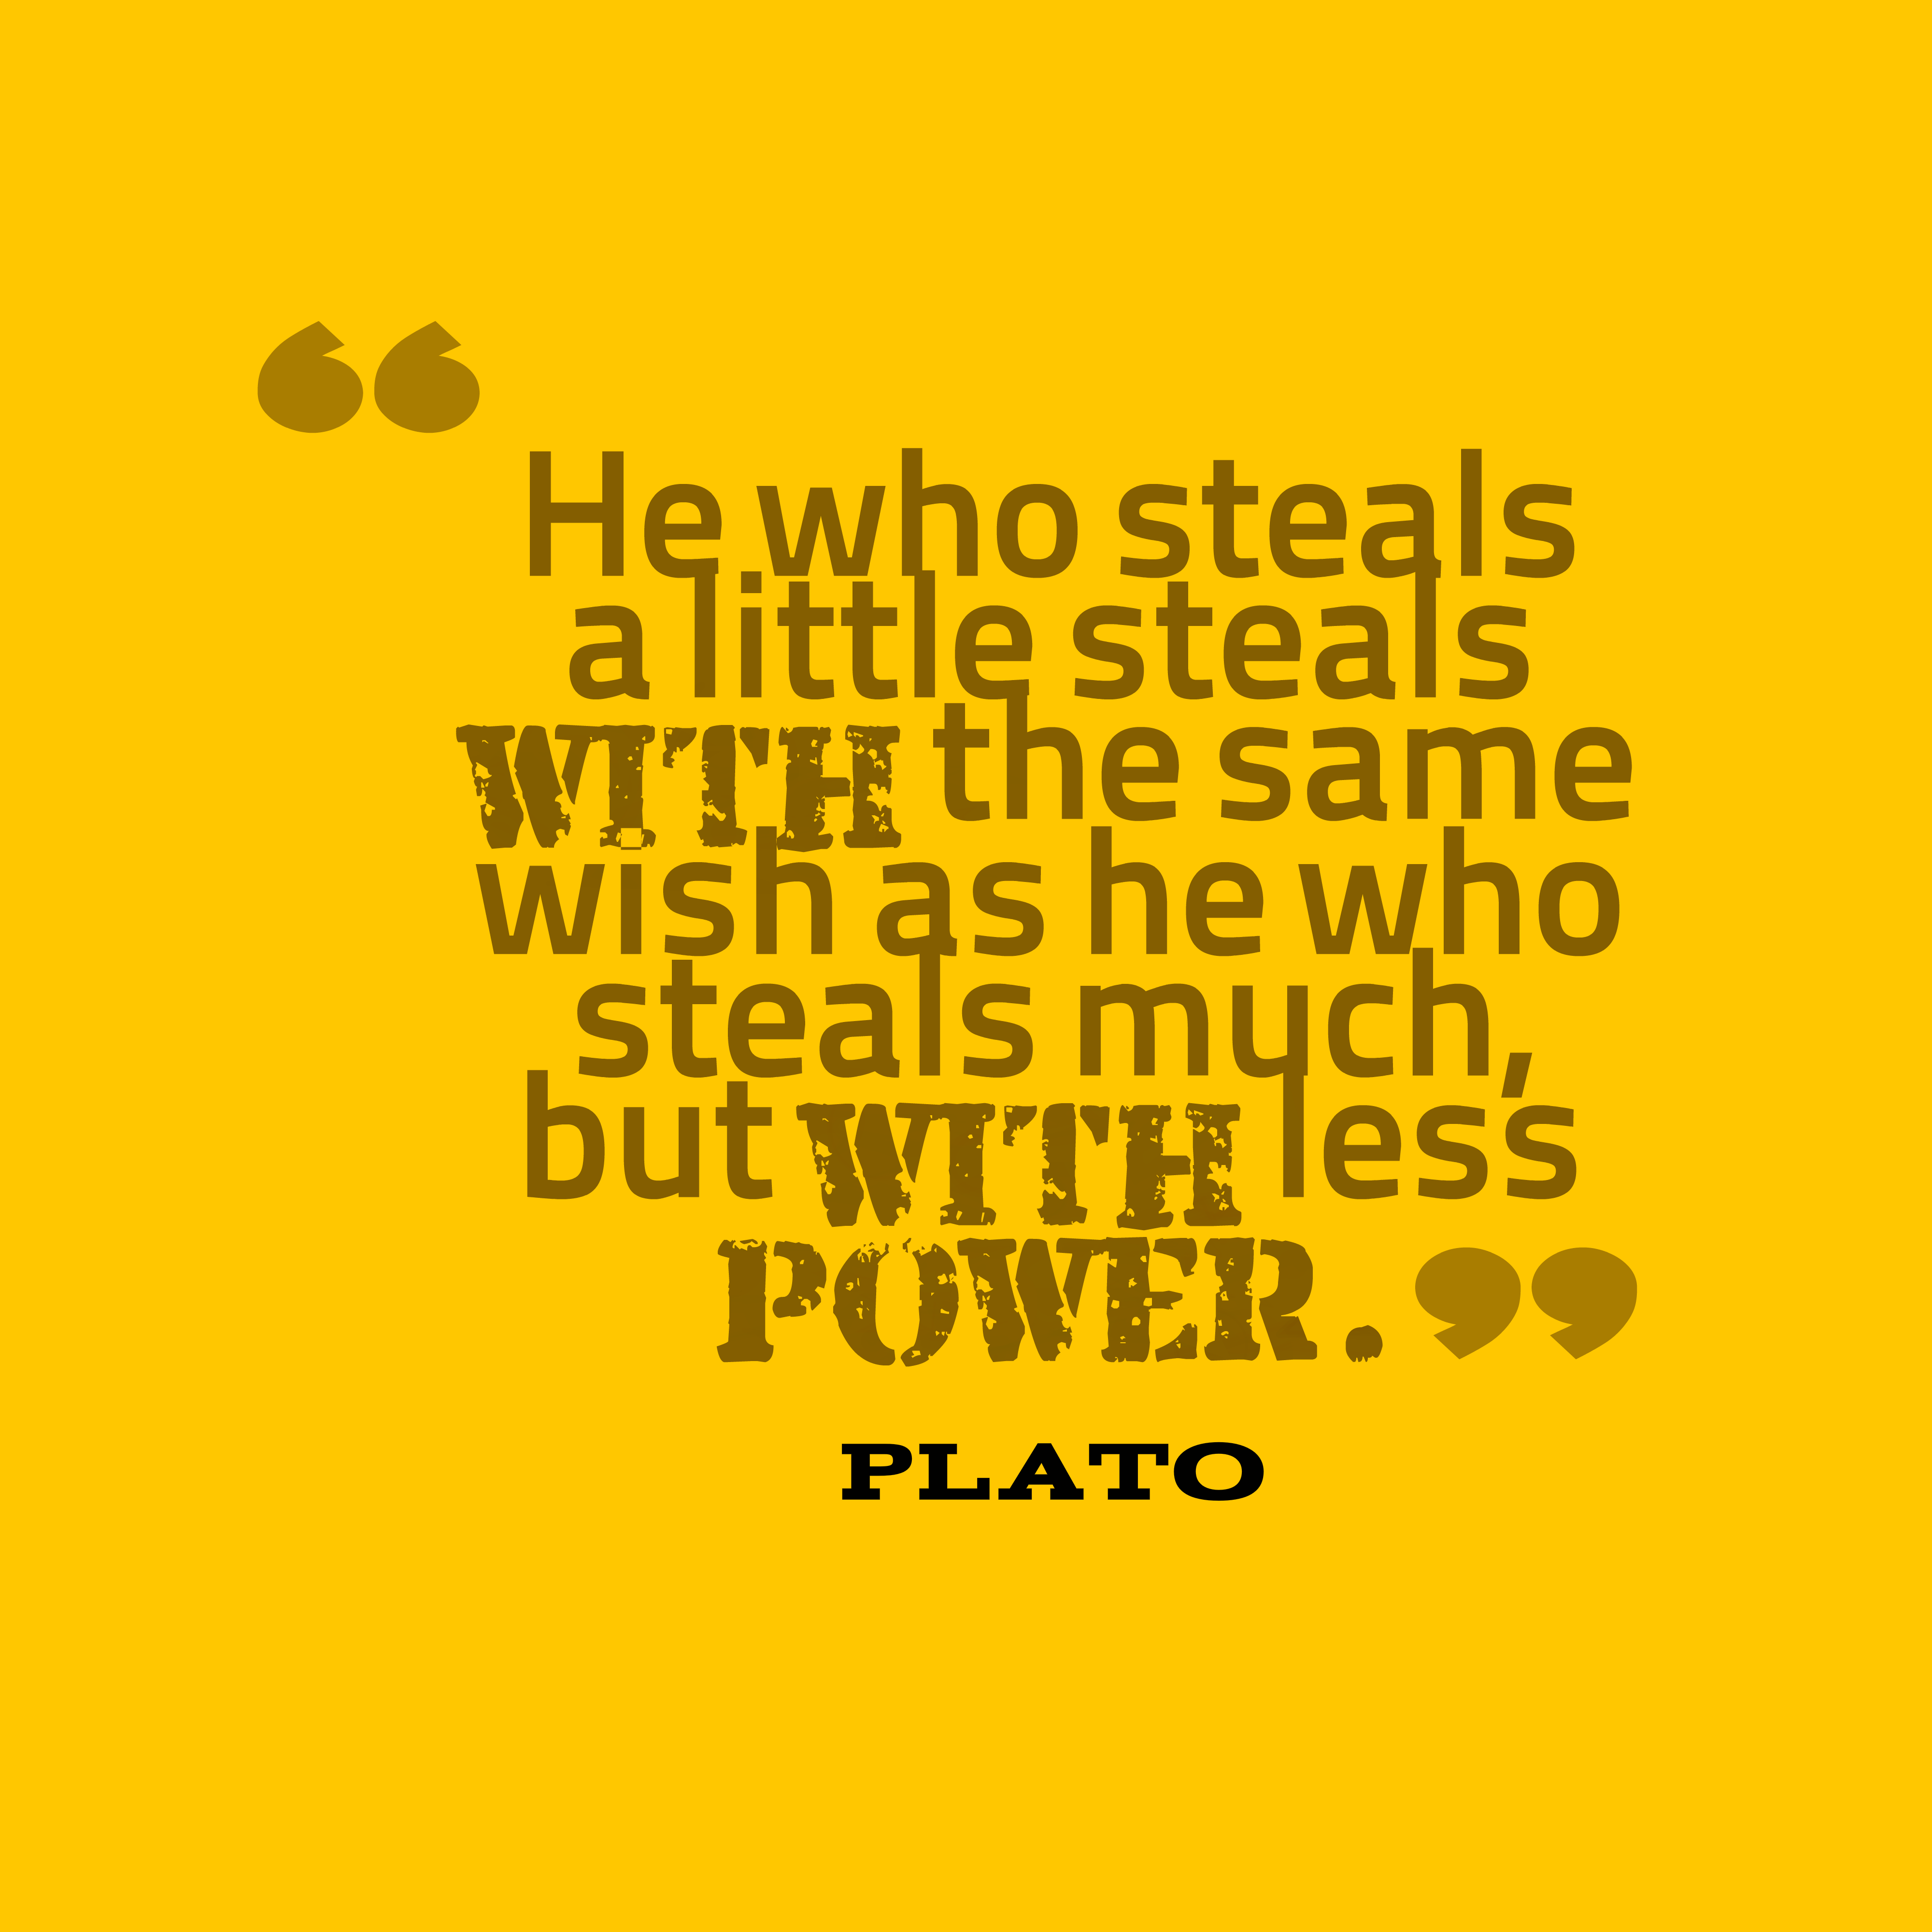 Quotes image of He who steals a little steals with the same wish as he who steals much, but with less power.